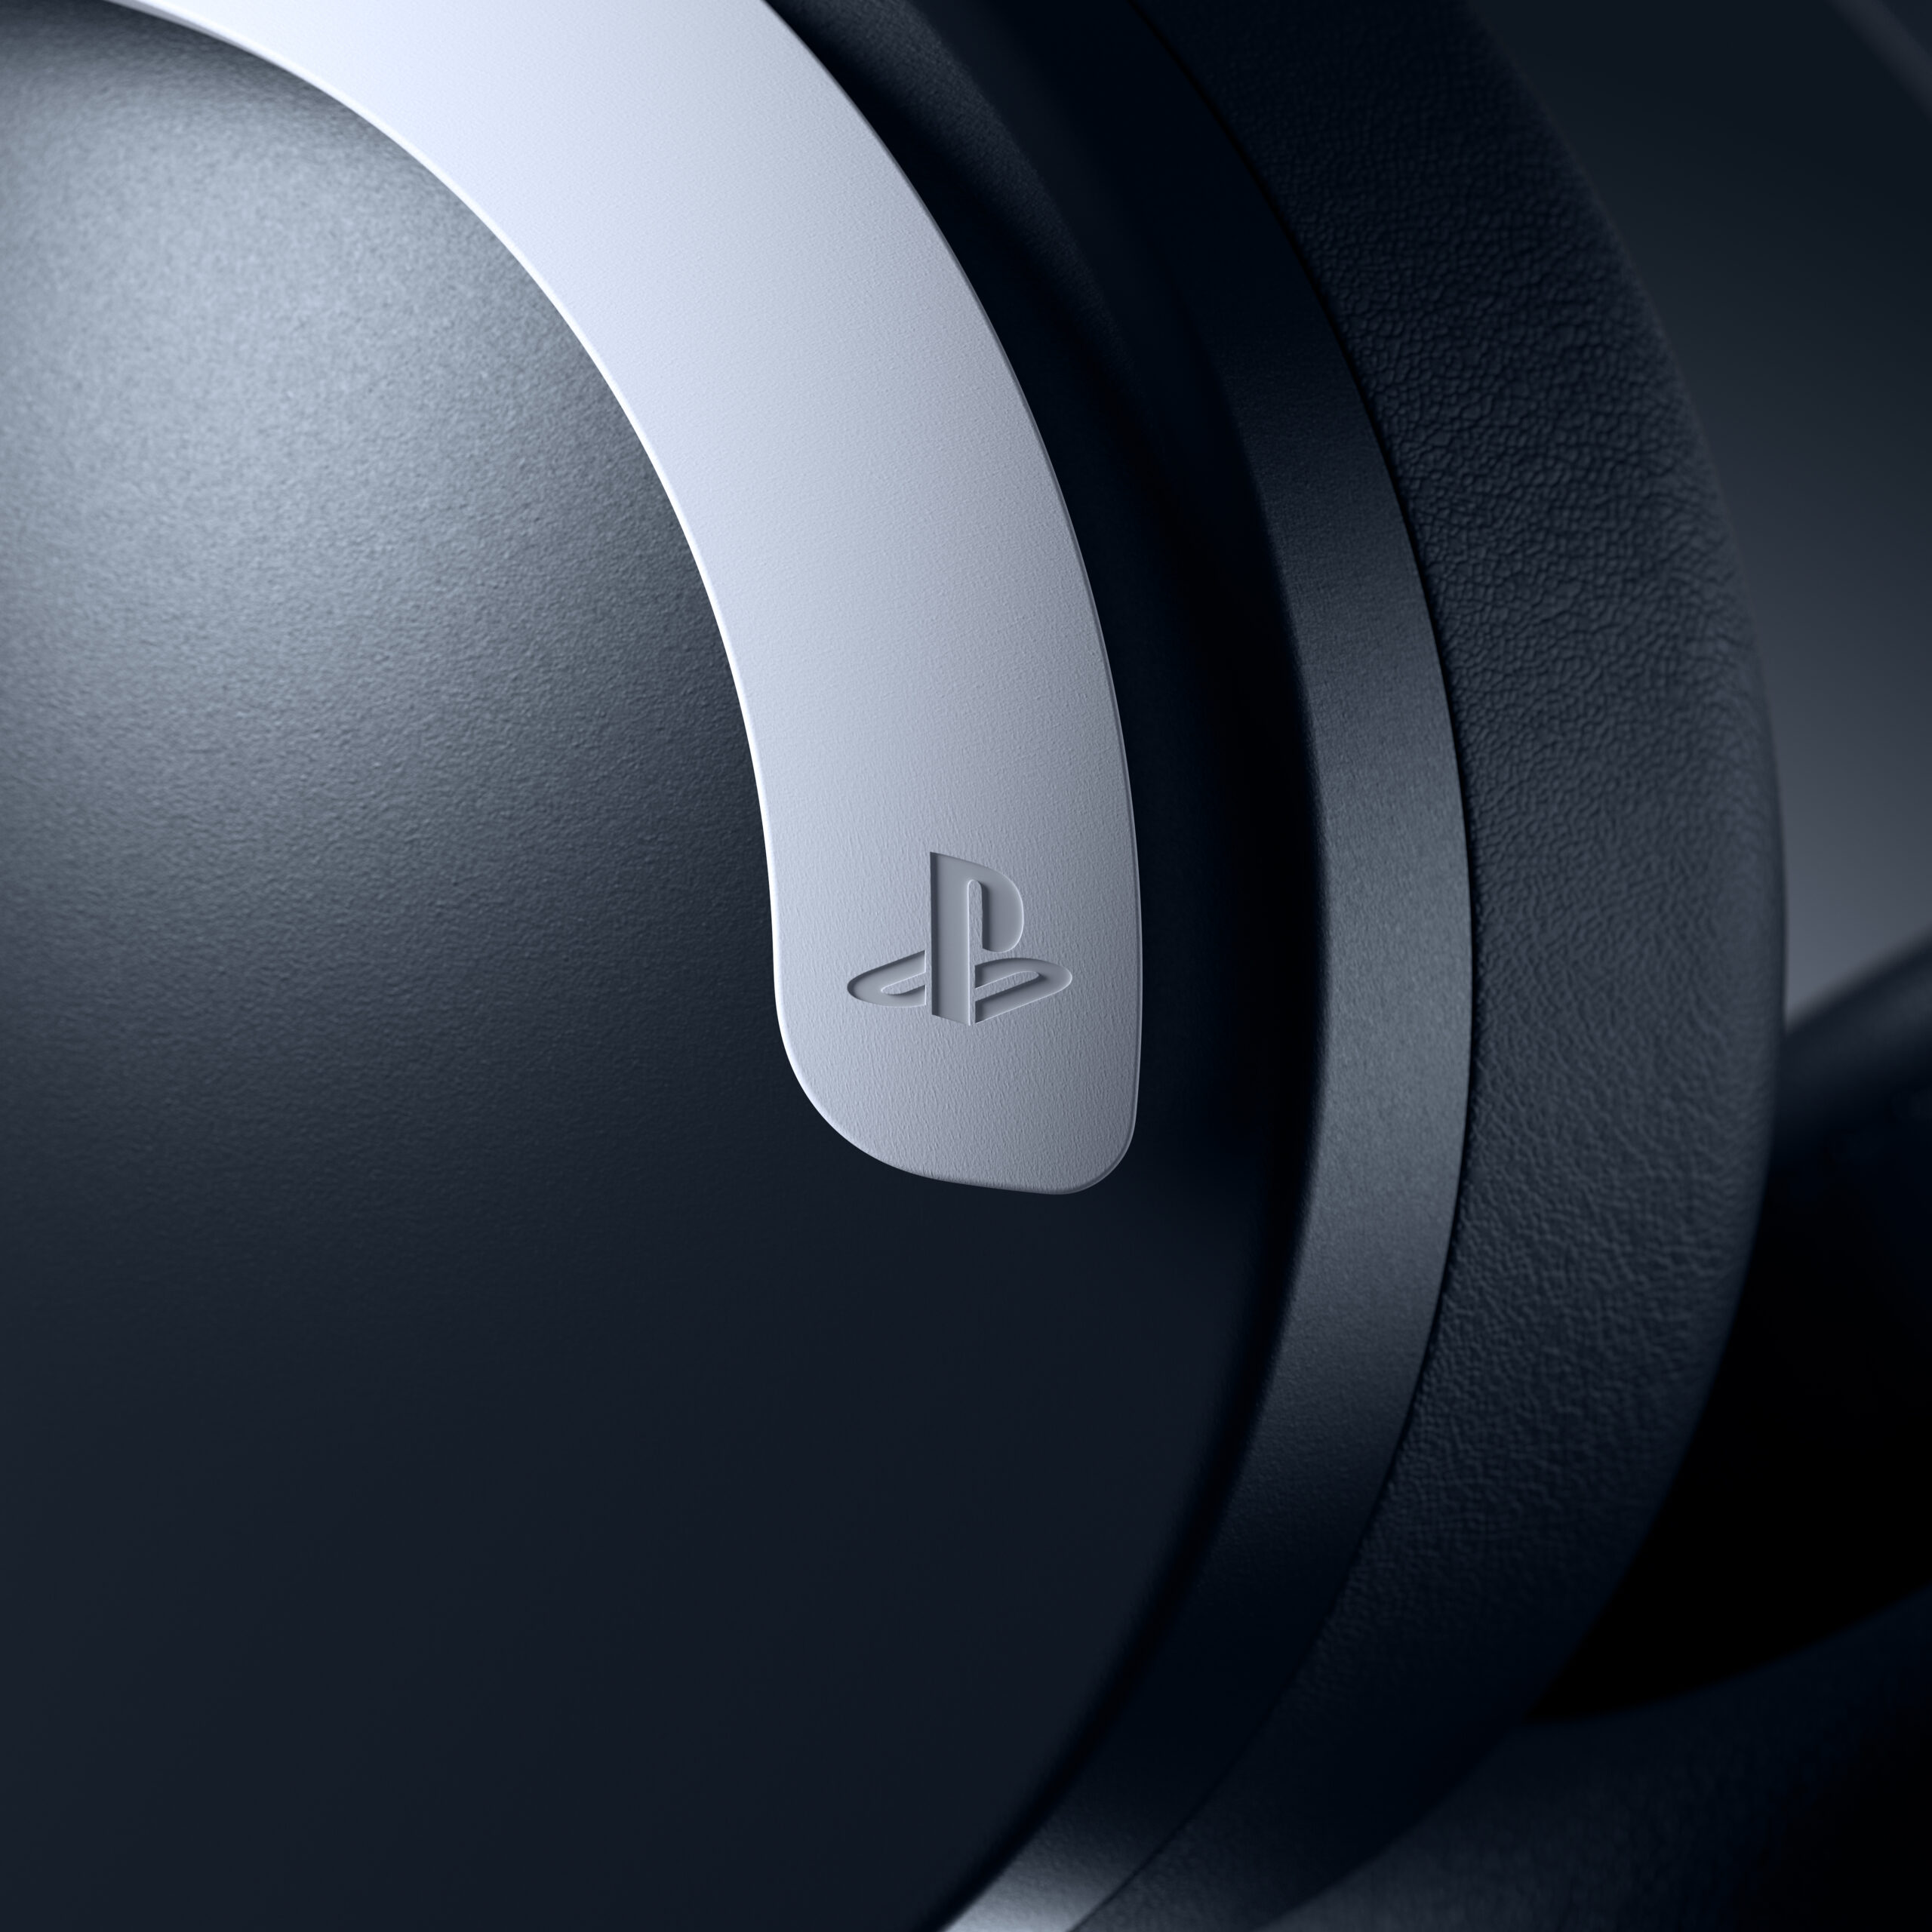 PS5 Hardware and Accessories 22